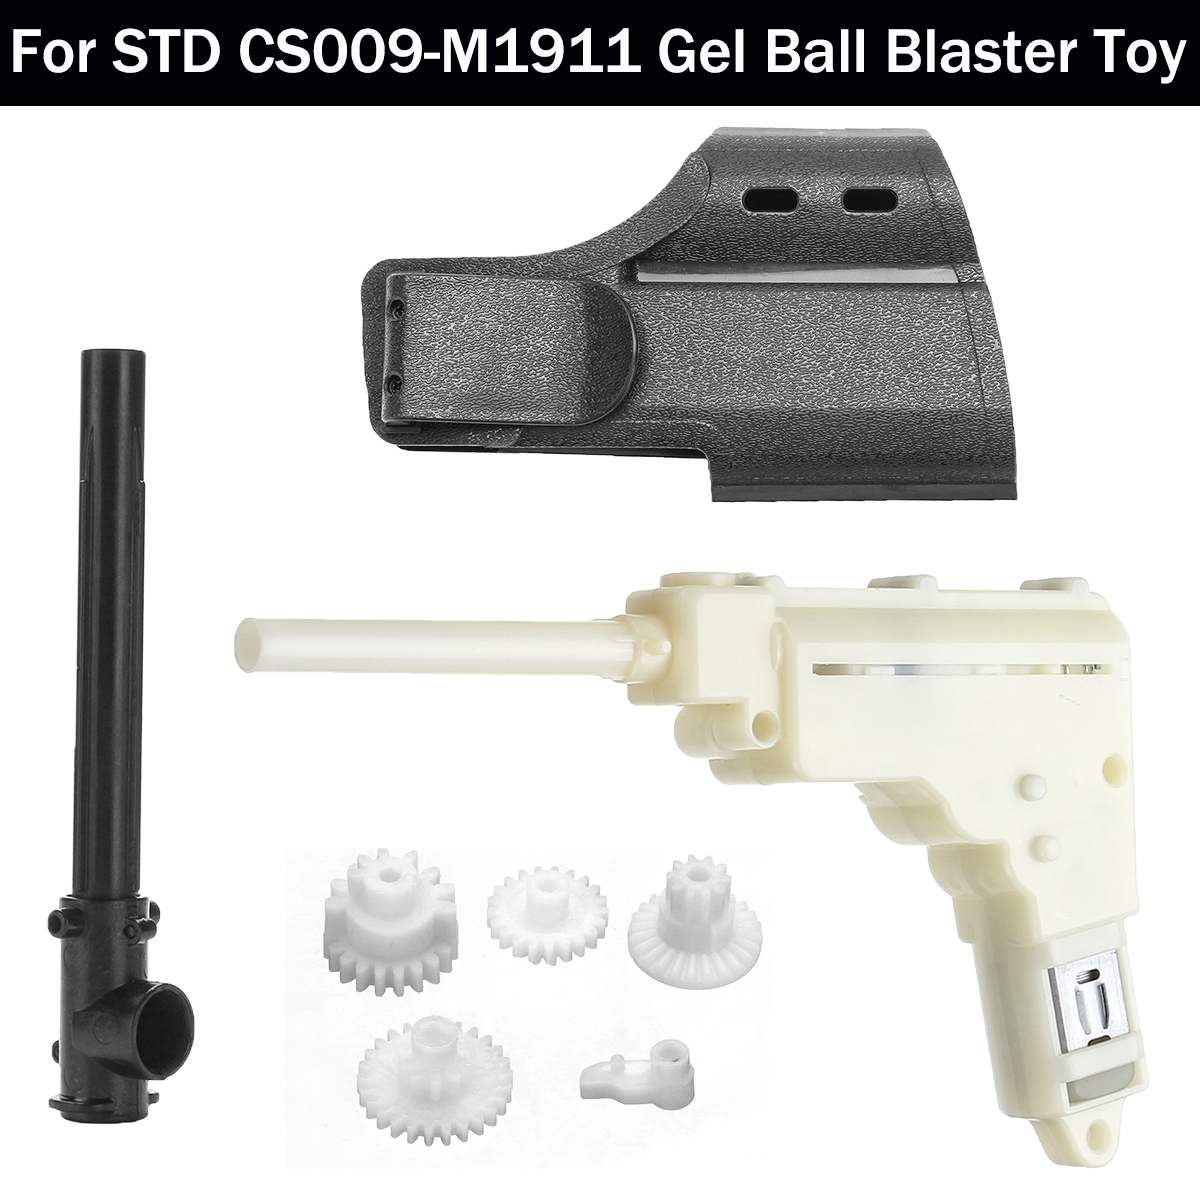 Outdoor Shooting For STD CS009 M1911 Water for Gun toy Gel